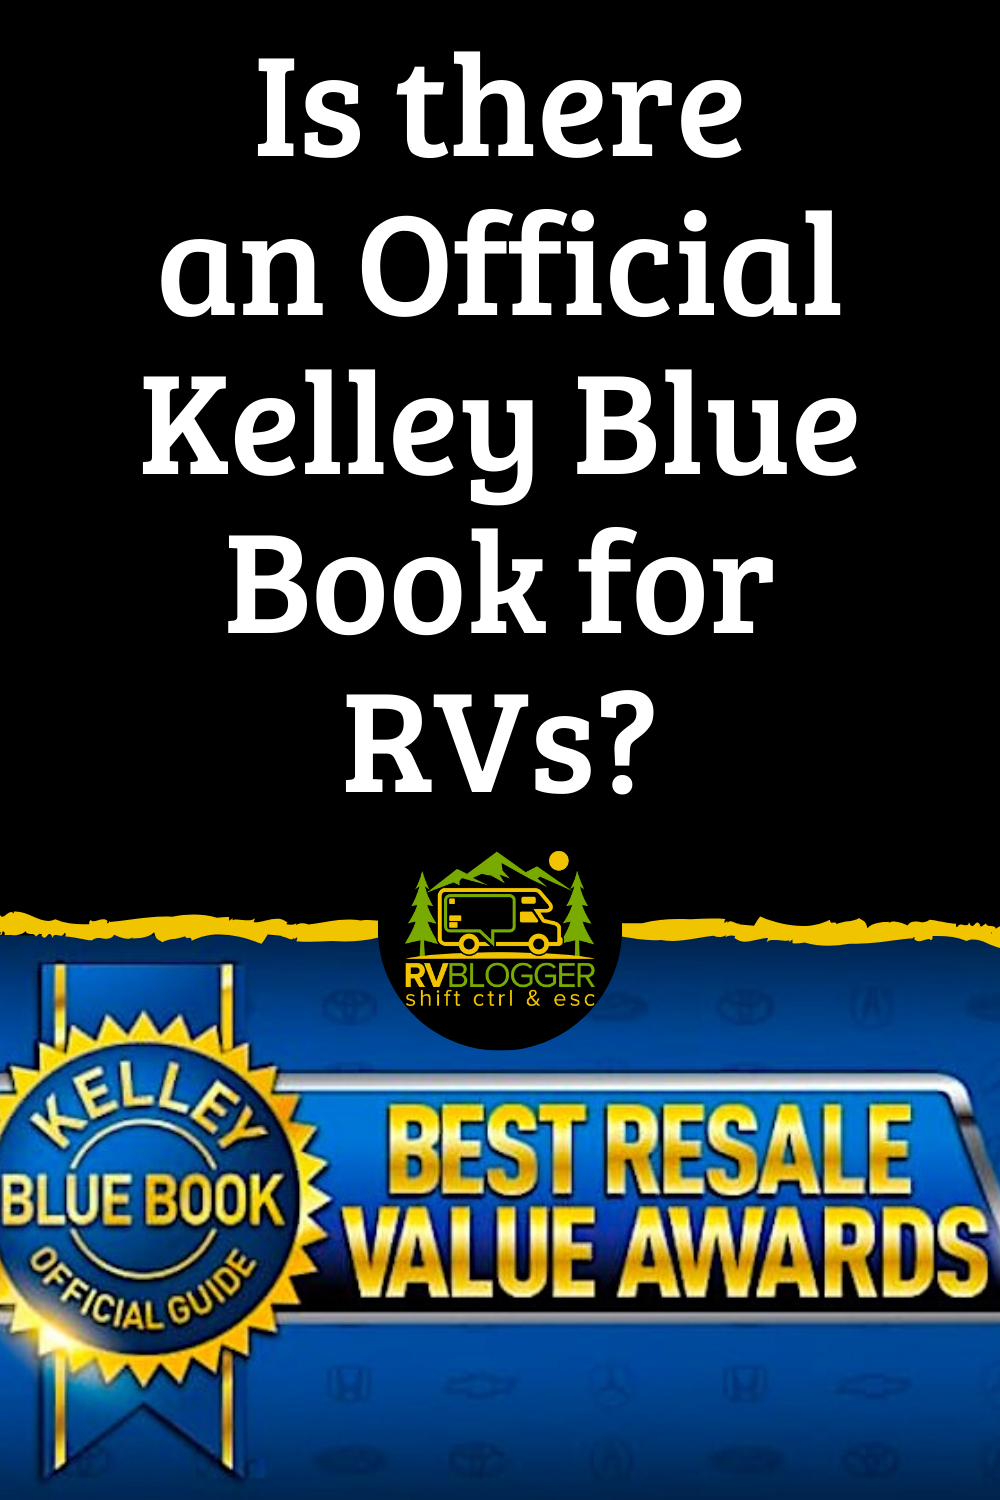 Kelley blue book diminished value